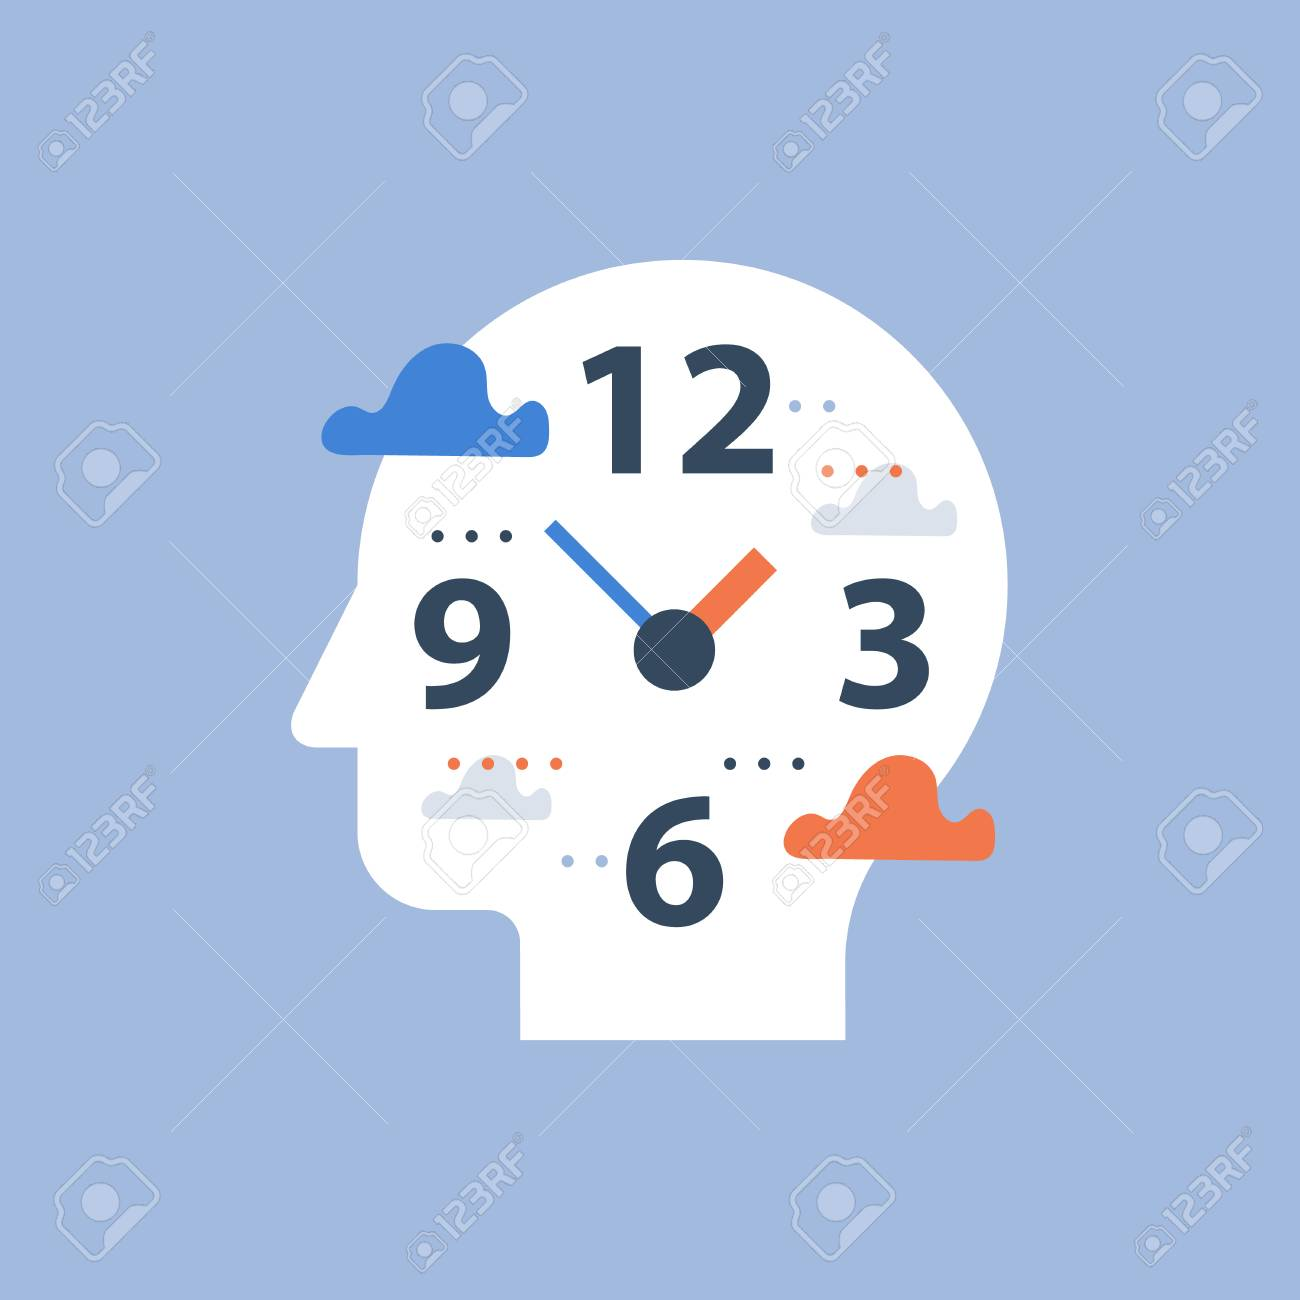 Procrastination concept, work hours and deadline, time management, clock face and head, day planning, free time, vector icon, time perception, being present, flat illustration - 110974814